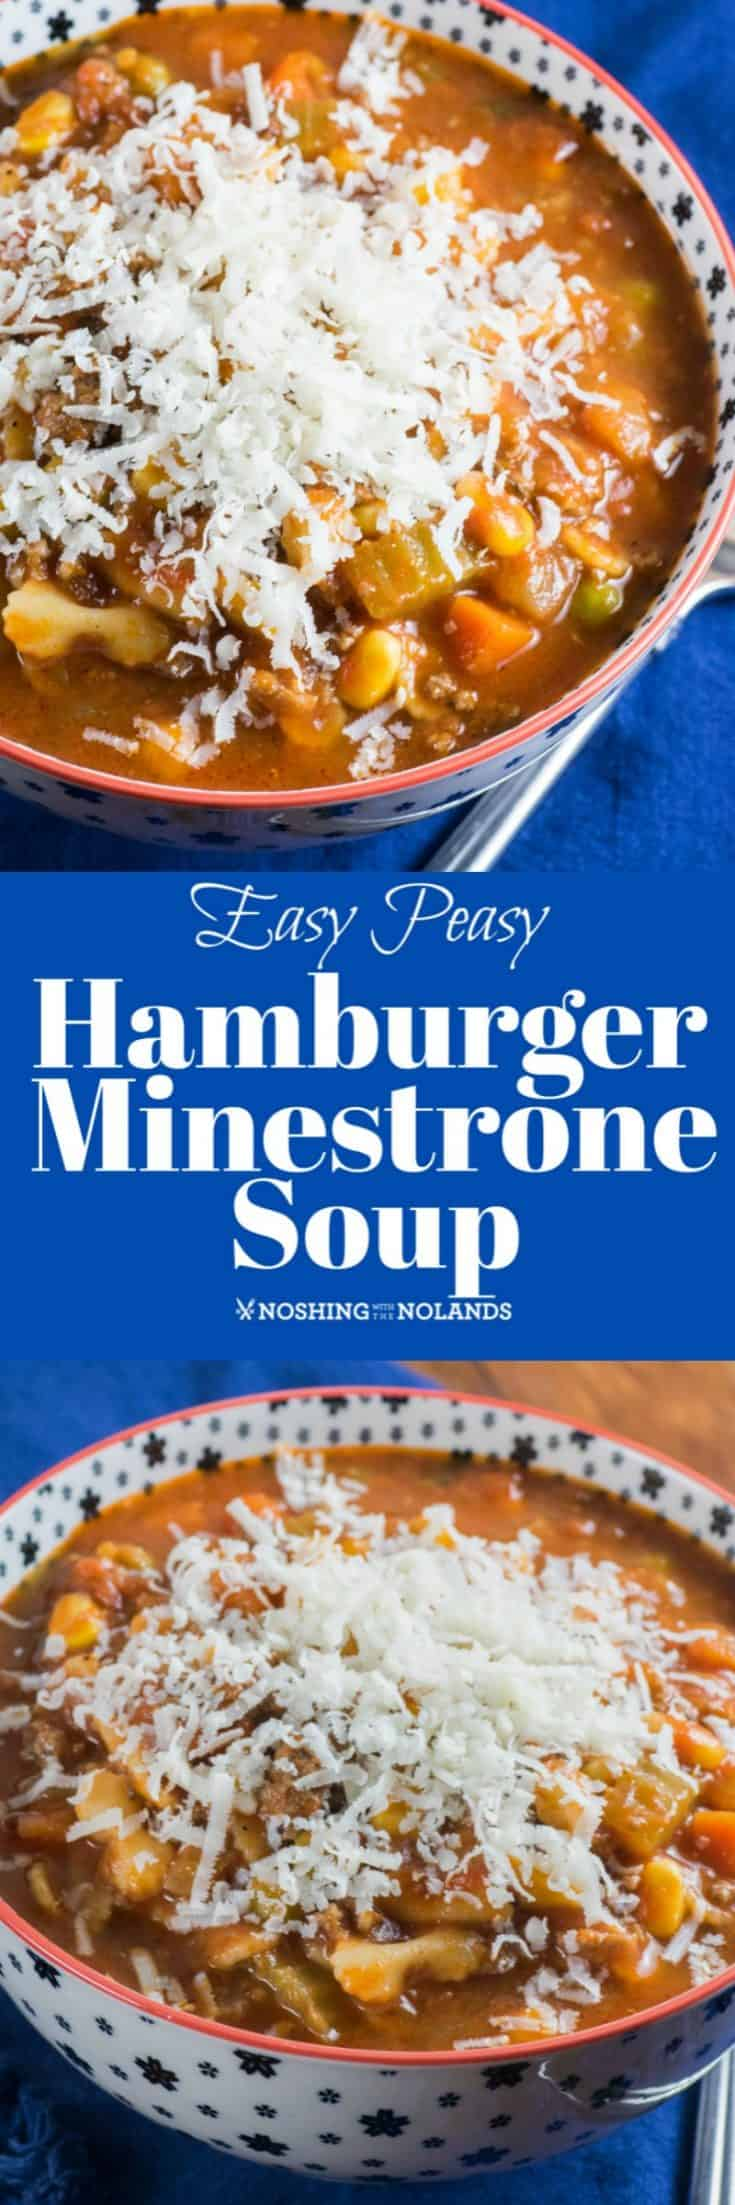 This Easy Peasy Hamburger Minestrone Soup is not only healthy and delicious but a big bowl of comfort! #minestronesoup #hamburger #easysoup